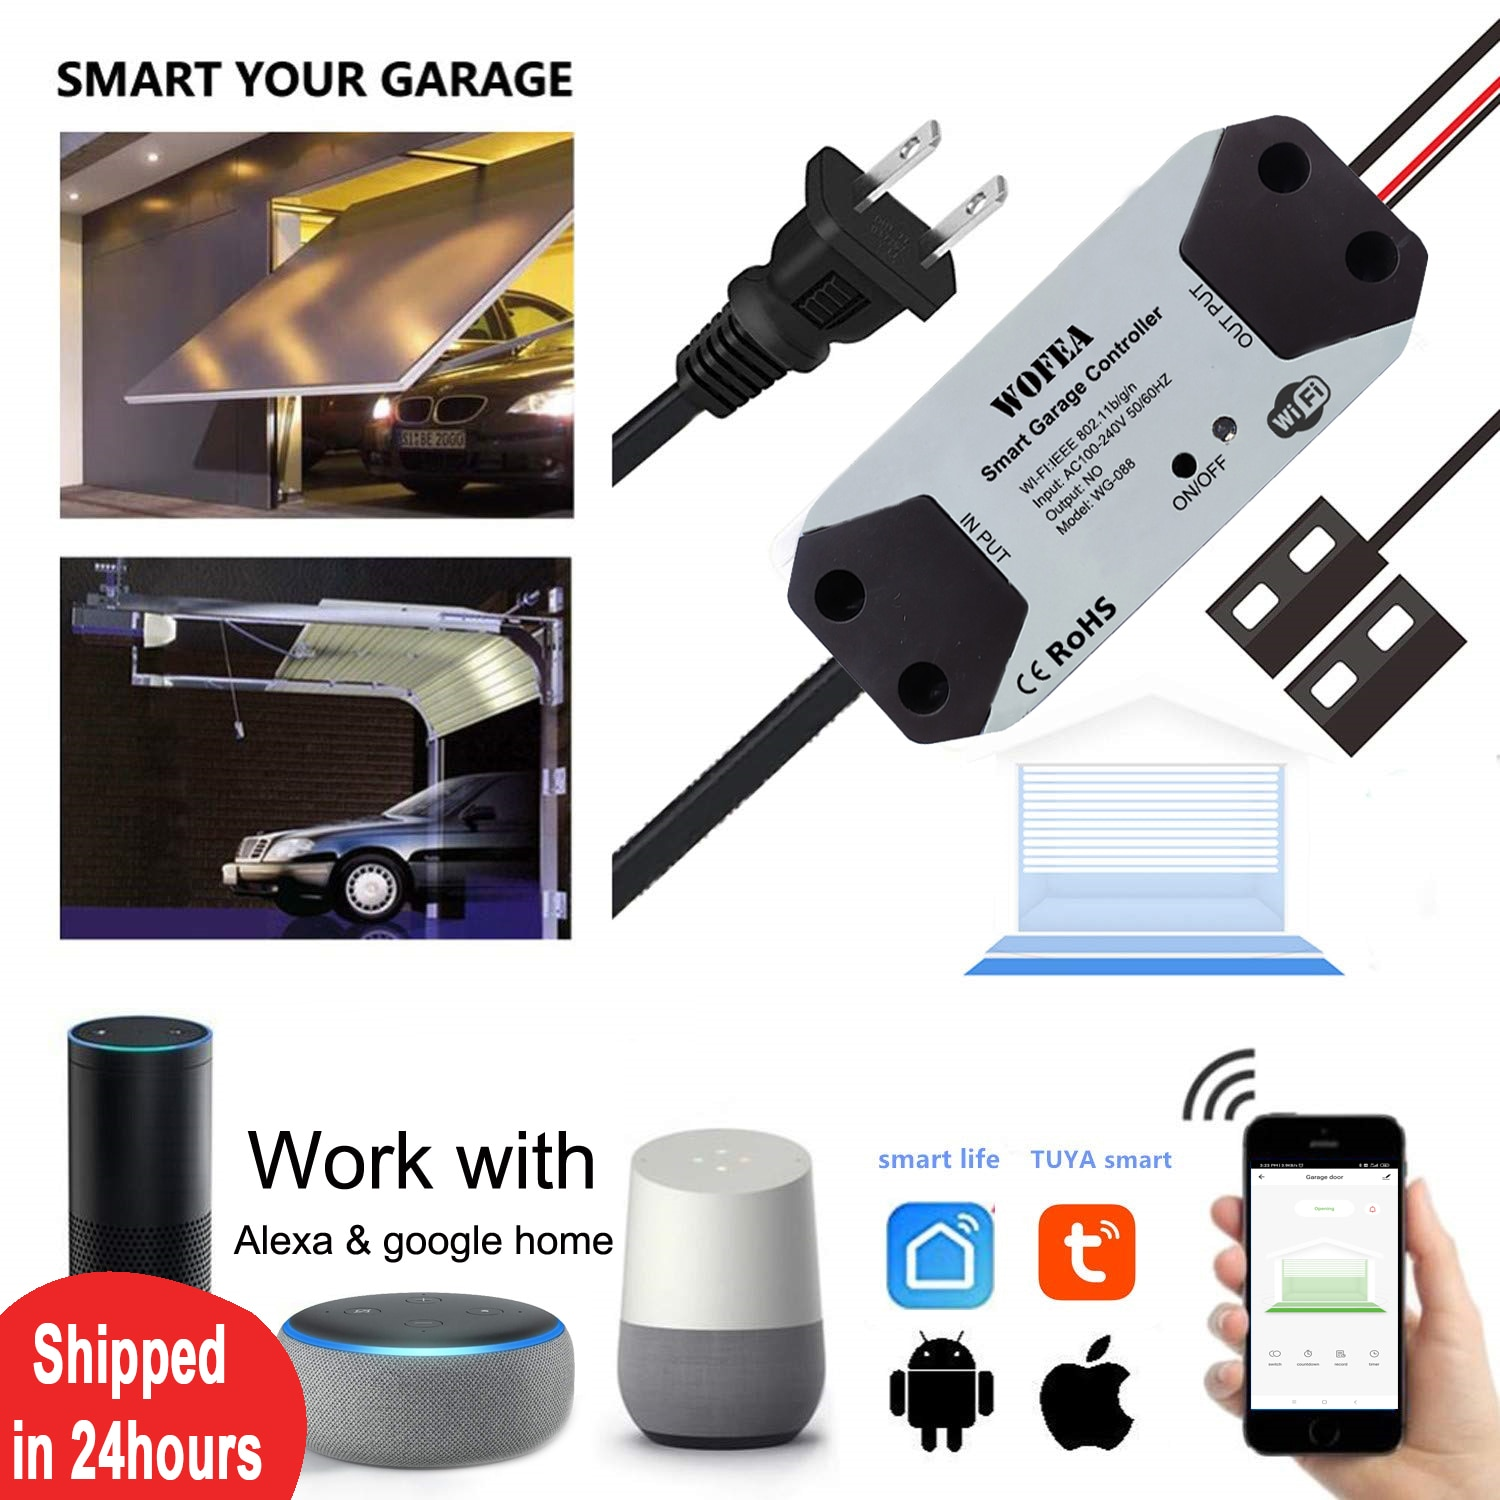 Wofea WiFi Switch Smart Garage Door Opener Controller Work With Alexa Echo Google Home SmartLife/Tuya APP Control No Hub Require